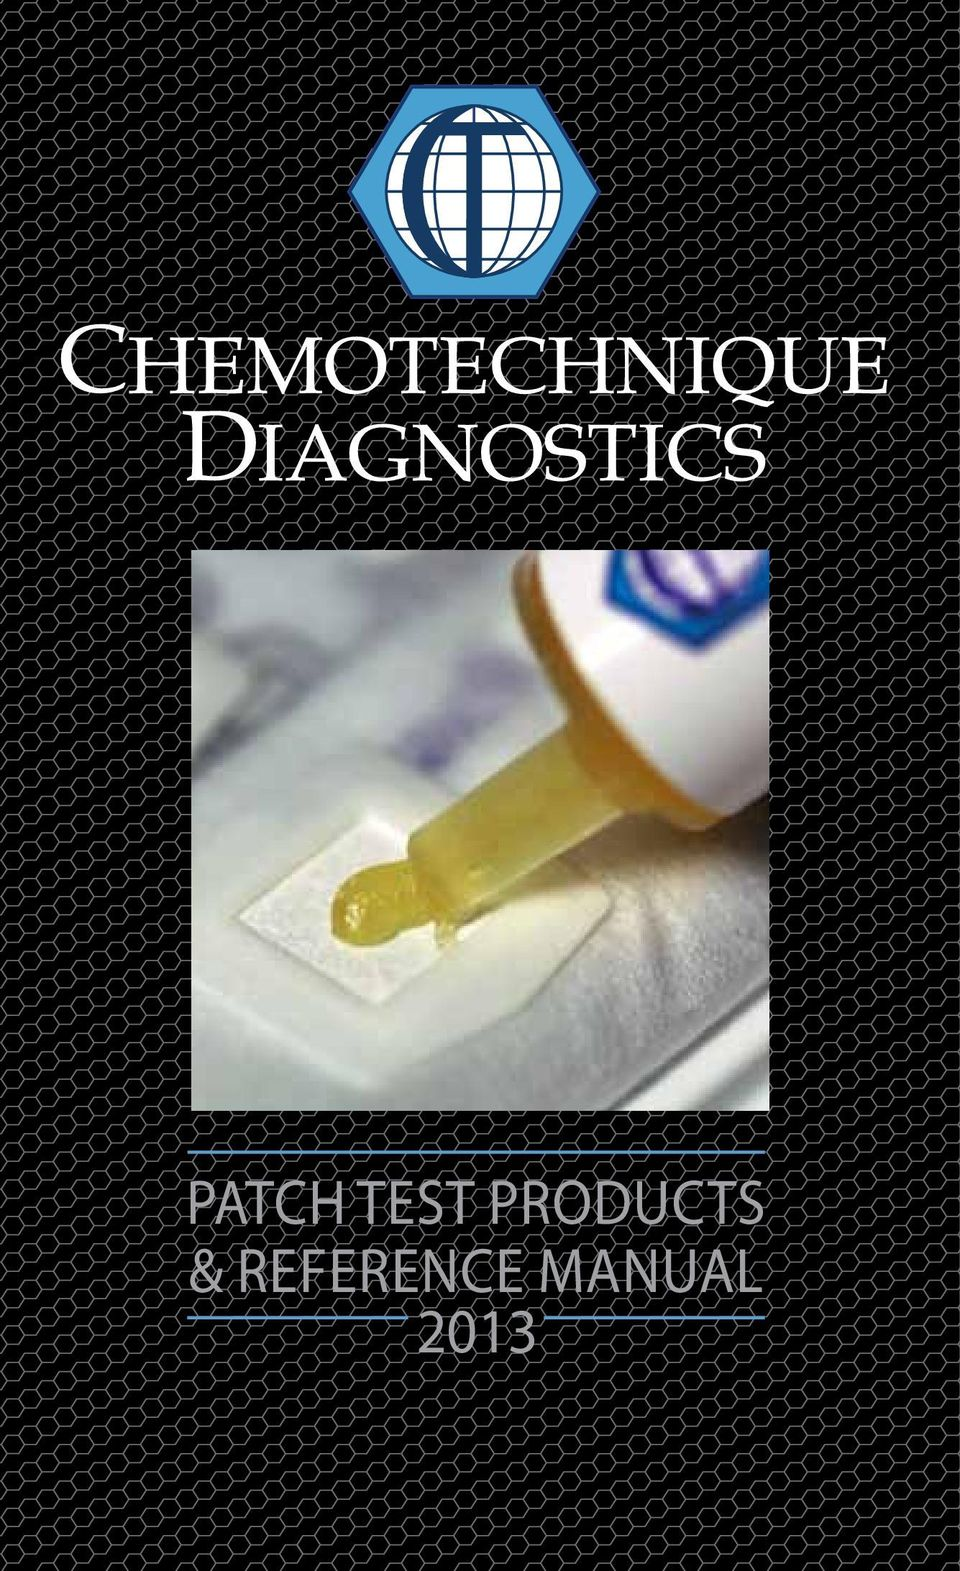 PATCH TEST PRODUCTS